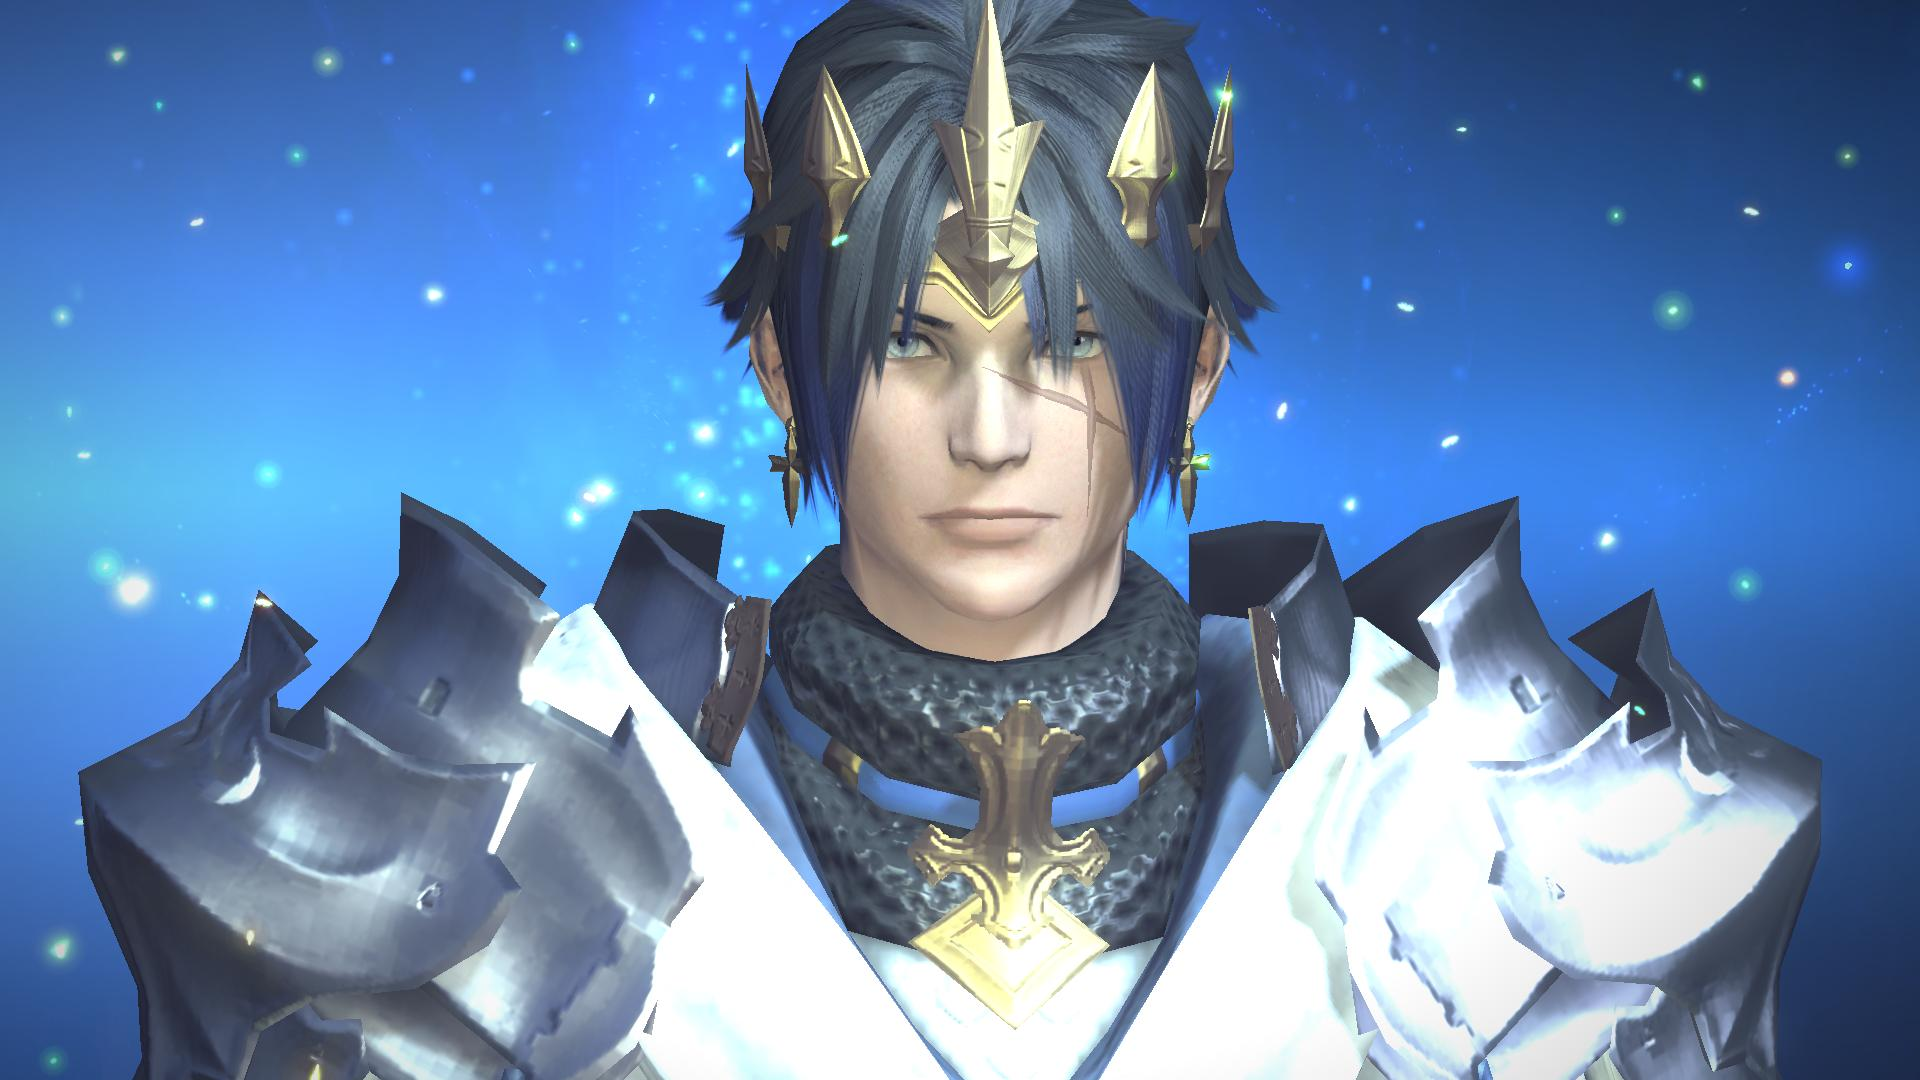 Final Fantasy XIV A Realm Reborns Story Does Right What The Original FFXIV Did Wrong